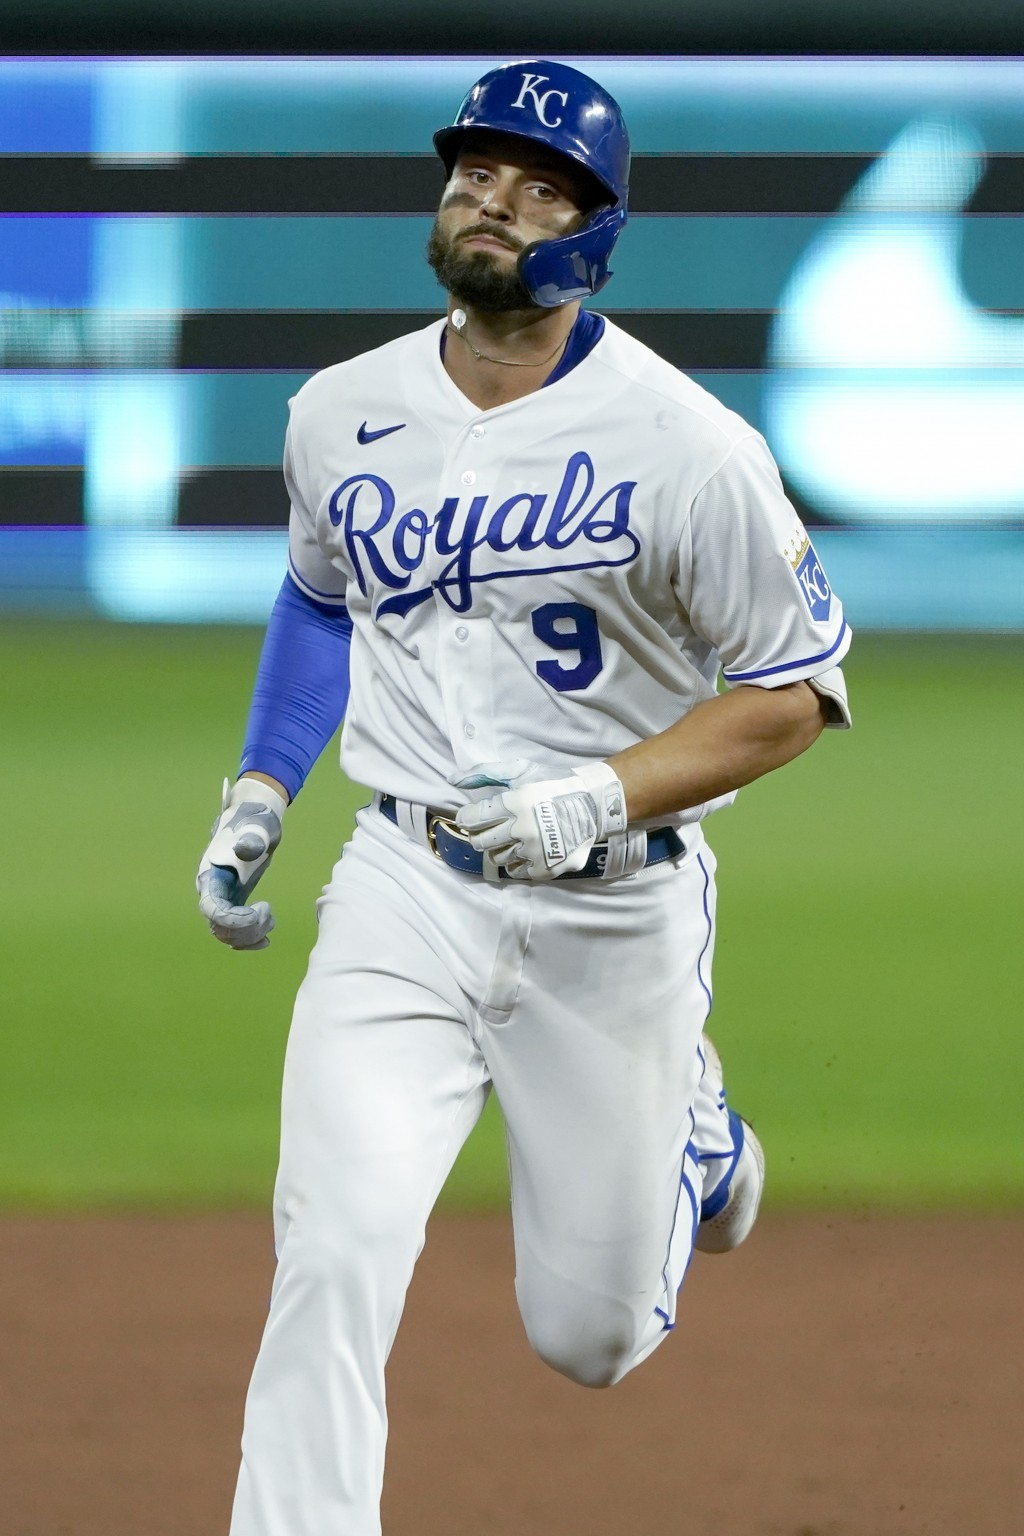 Kansas City Royals' Ryan McBroom rounds the bases after hitting a solo home run during the sixth inning of a baseball game against the Chicago White S...